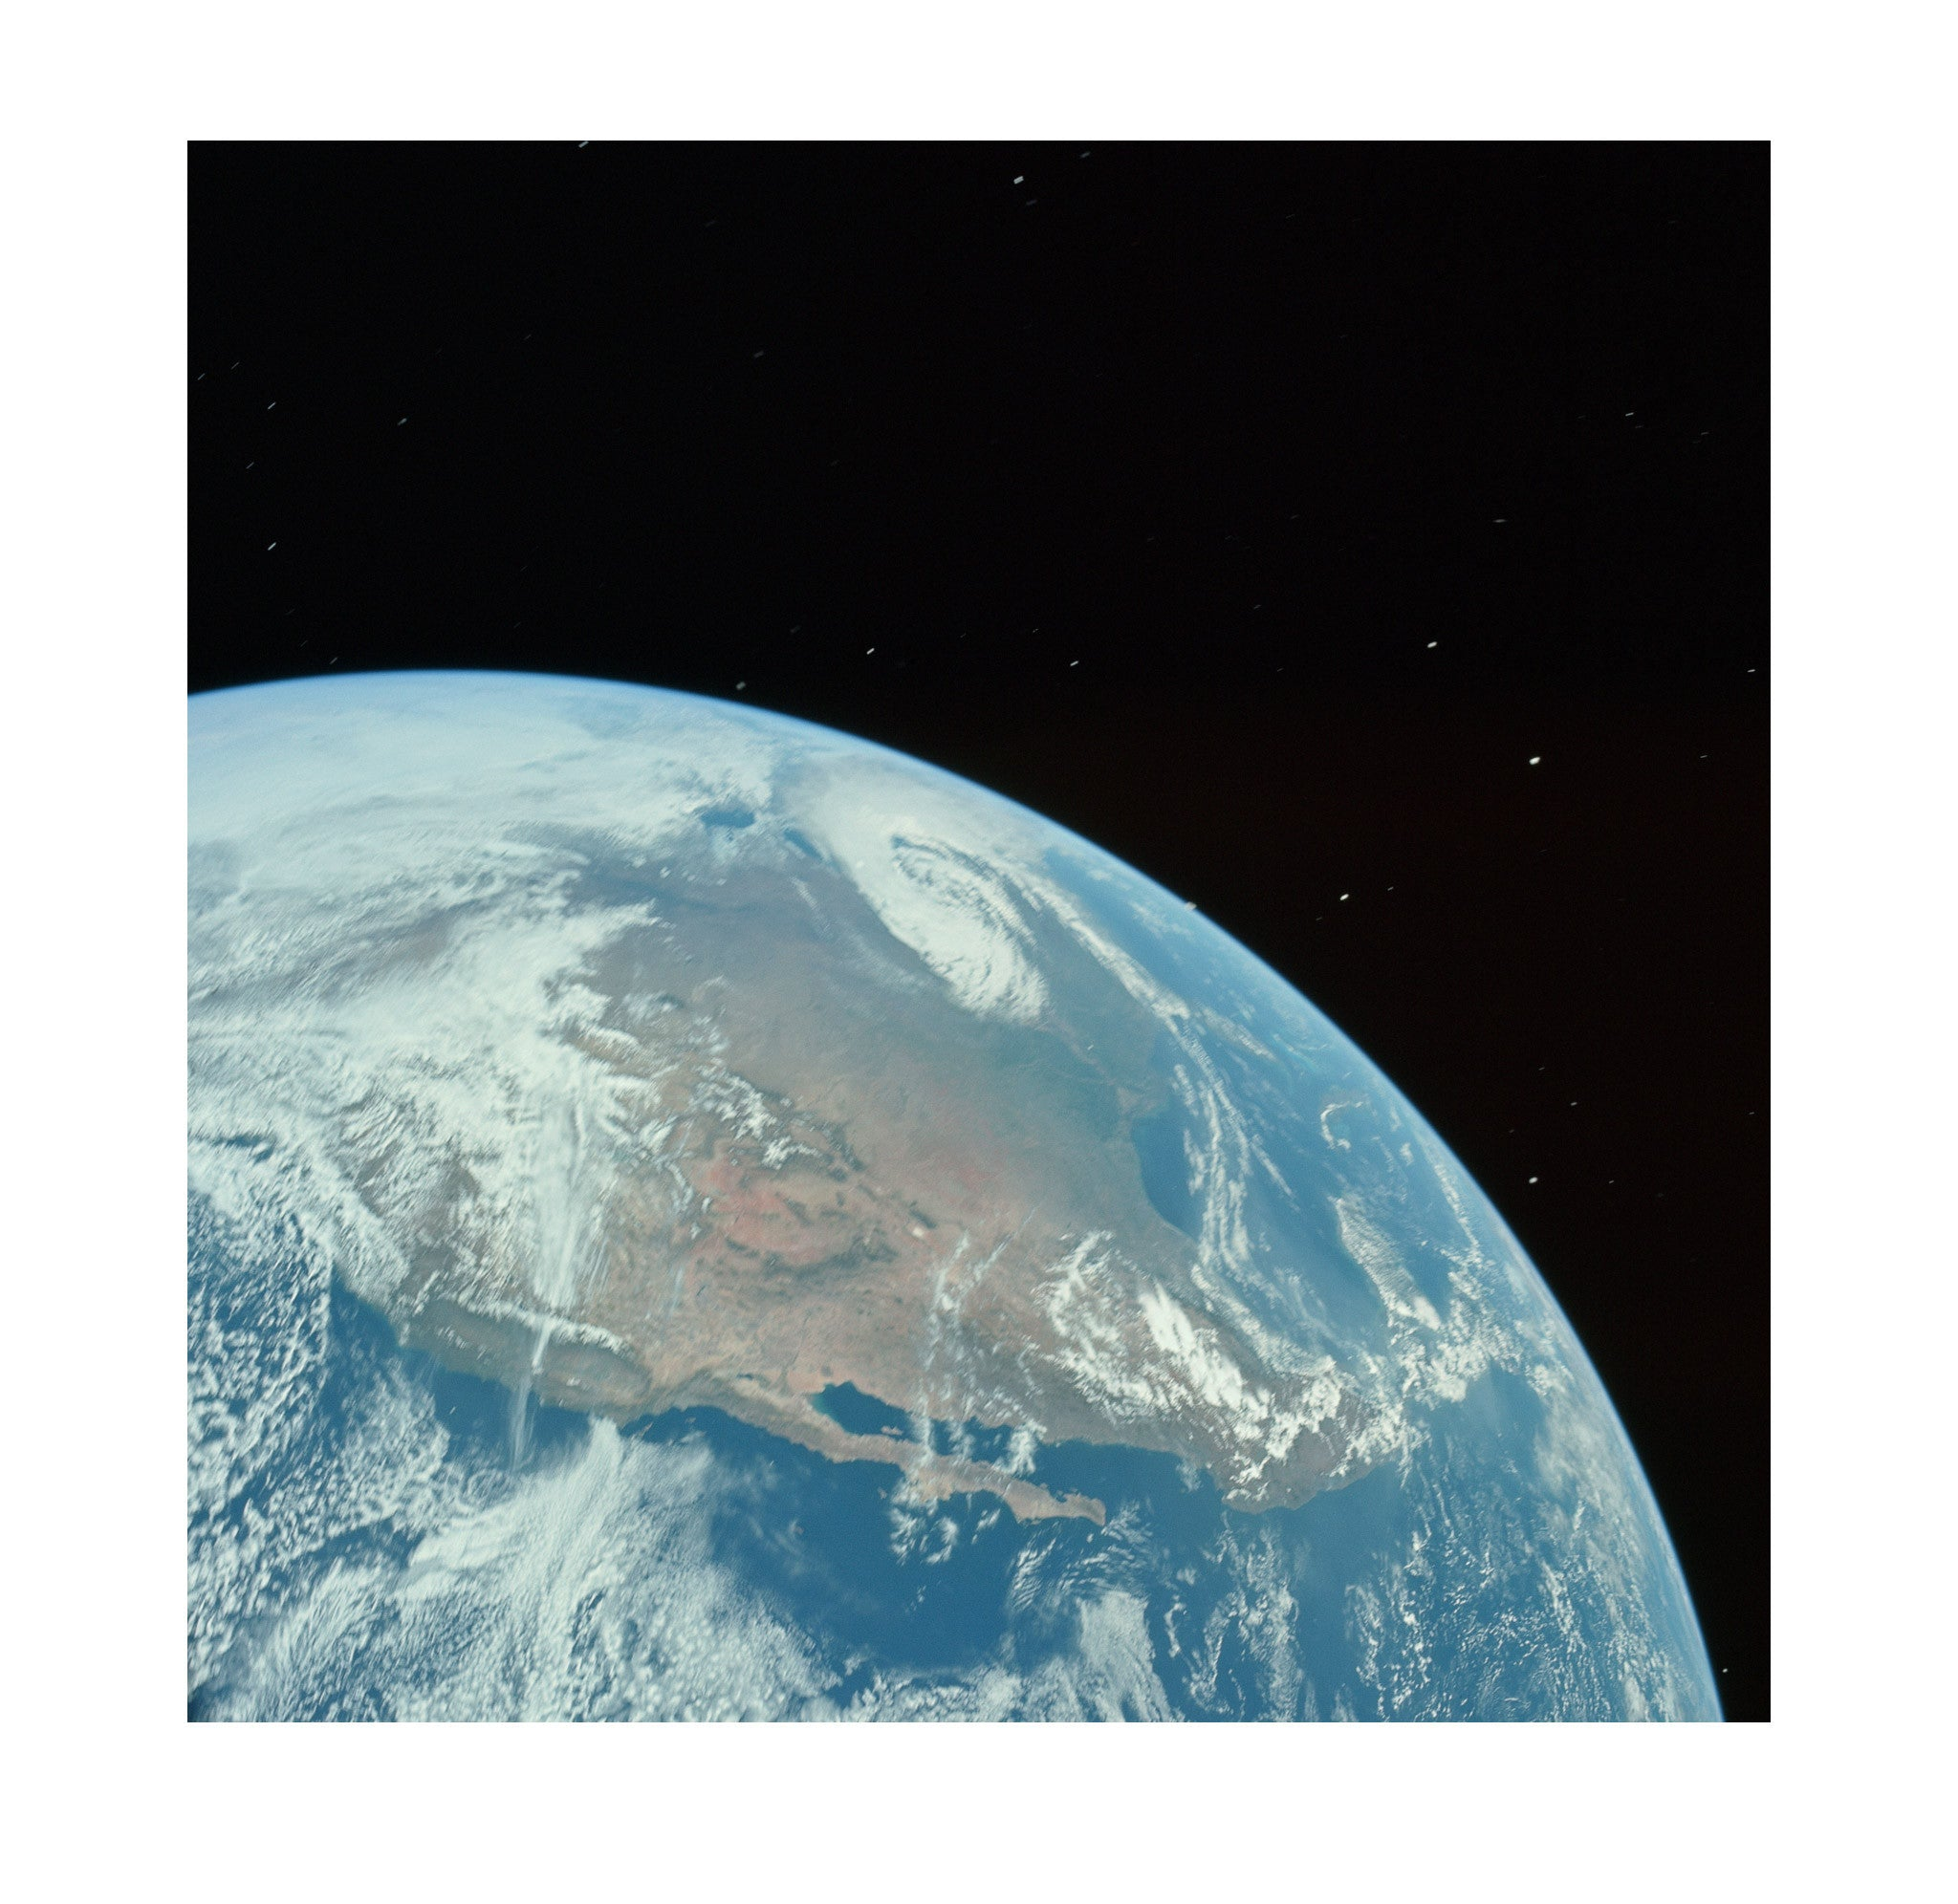 Apollo 16 – Earth